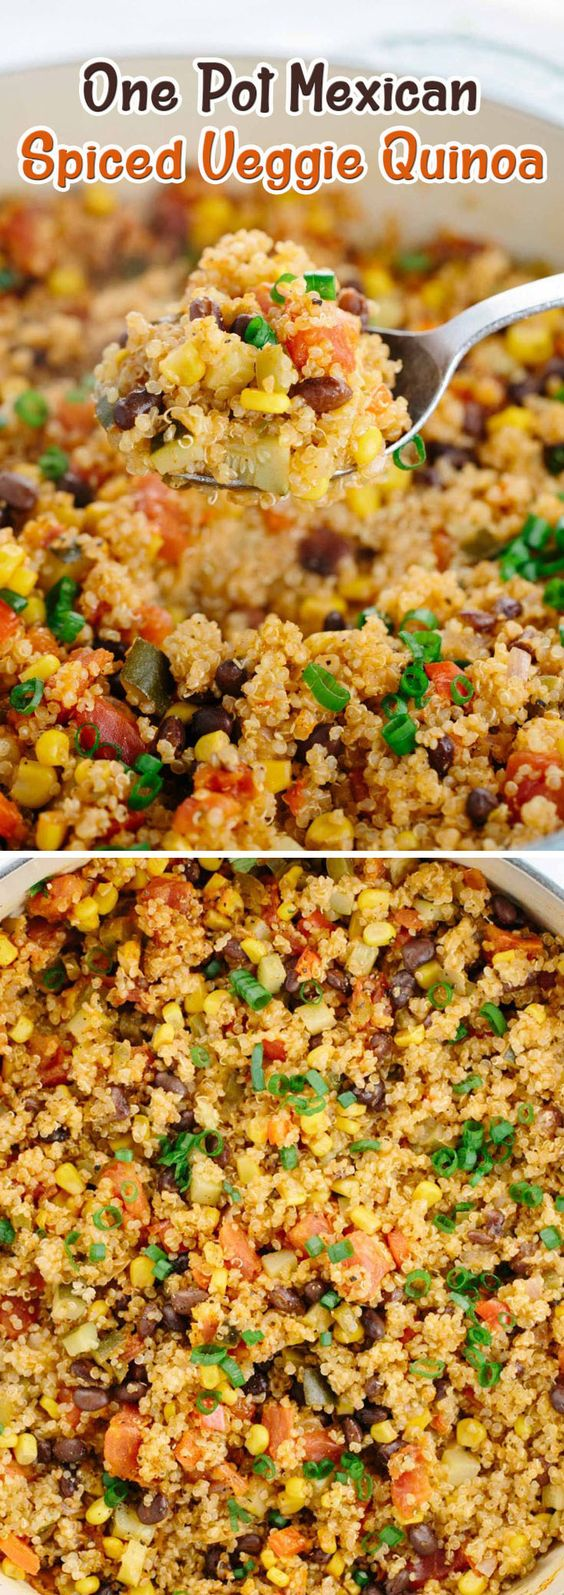 One Pot Mexican Spiced Veggie Quinoa